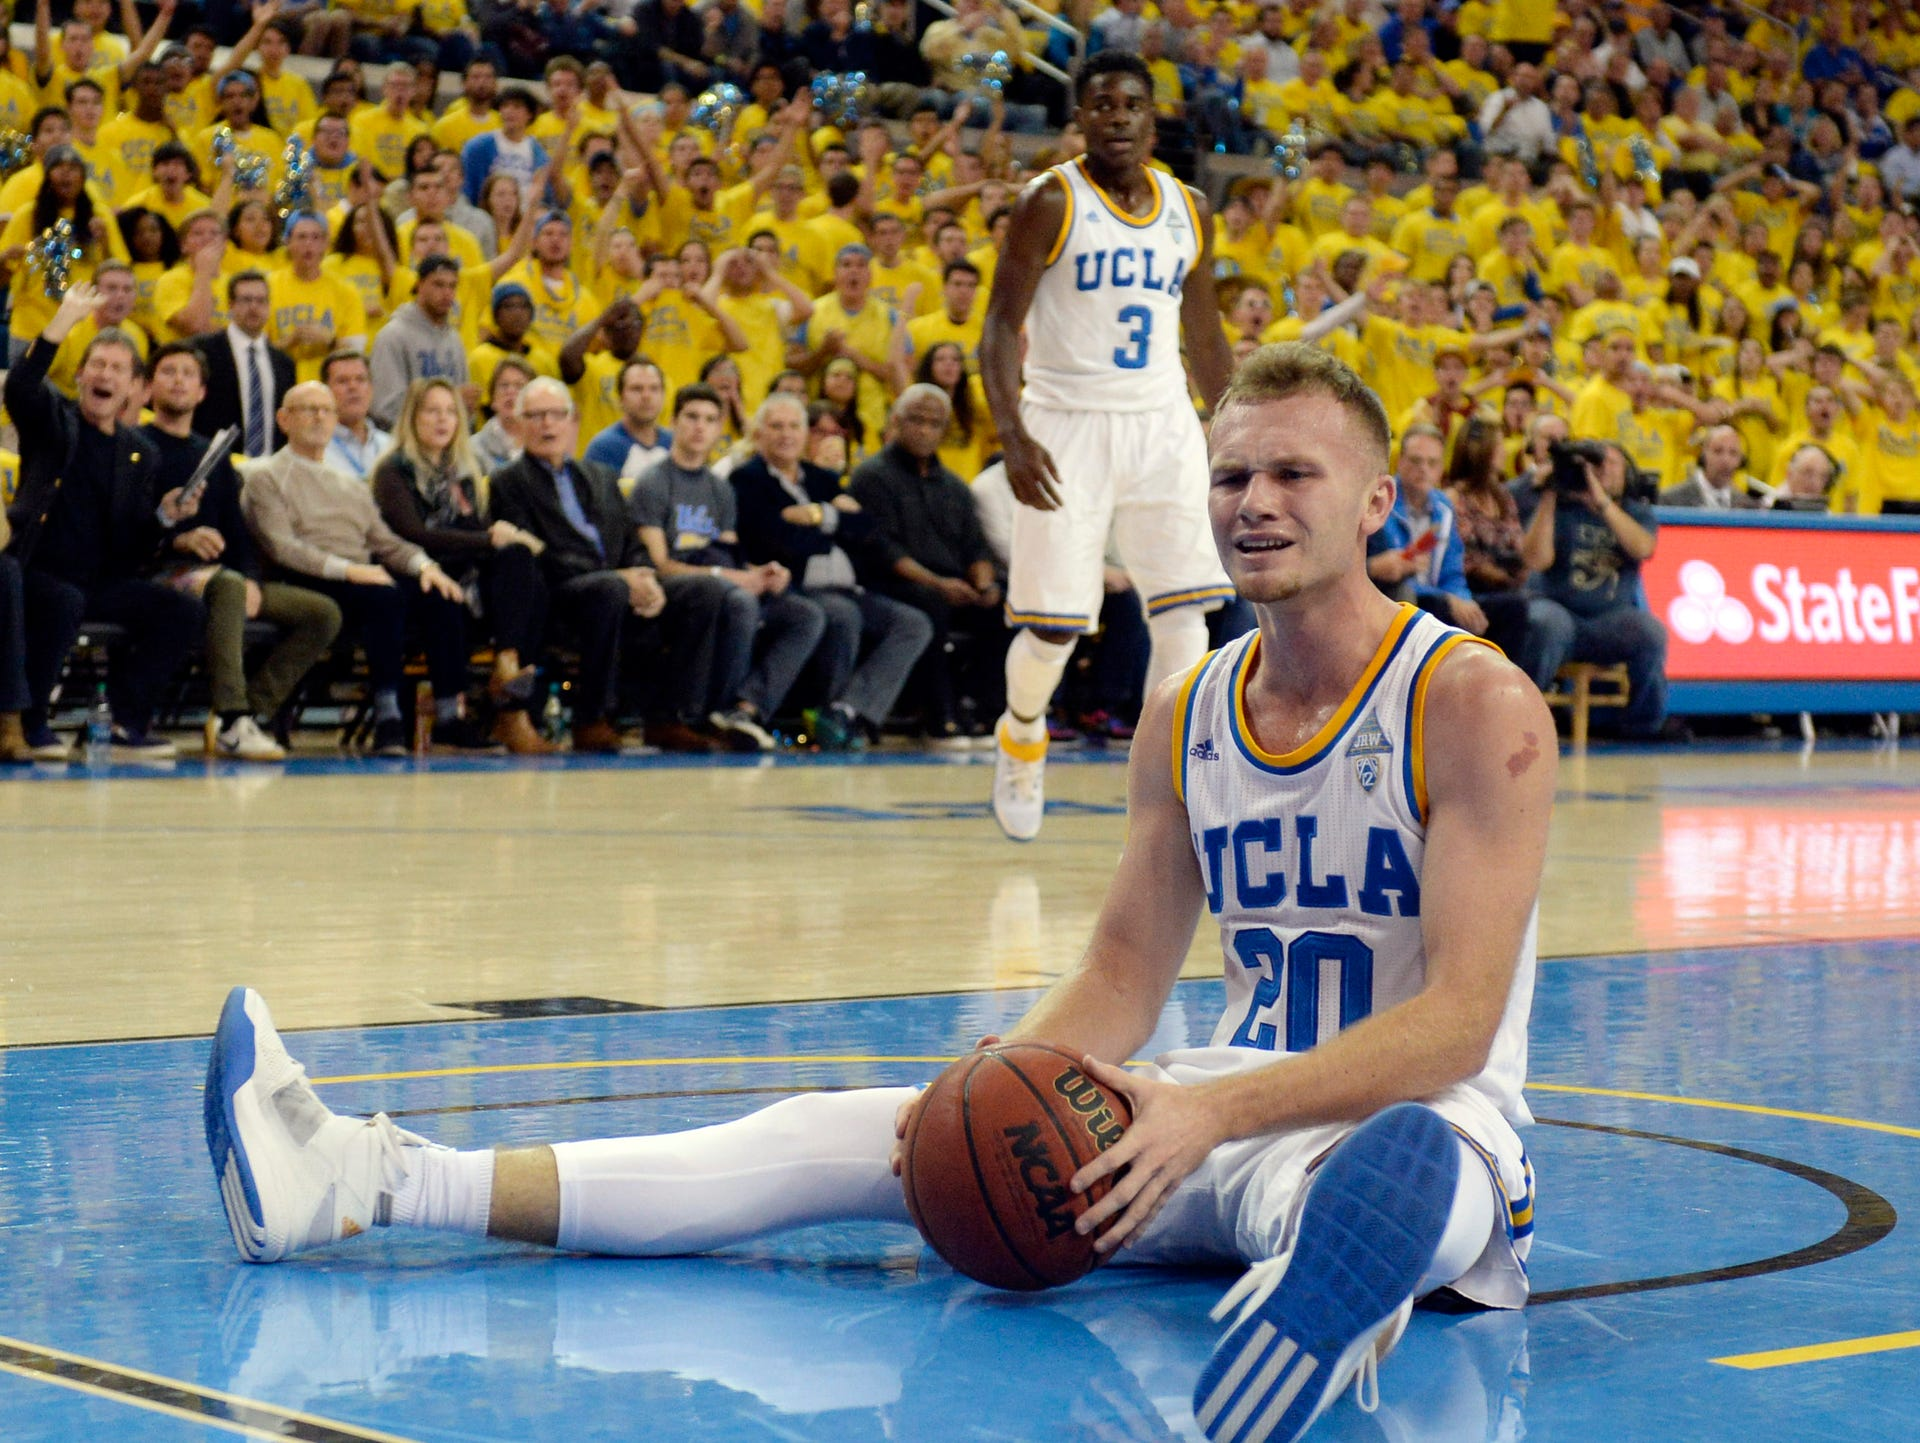 UCLA Bruins guard Bryce Alford (20) reacts to a play